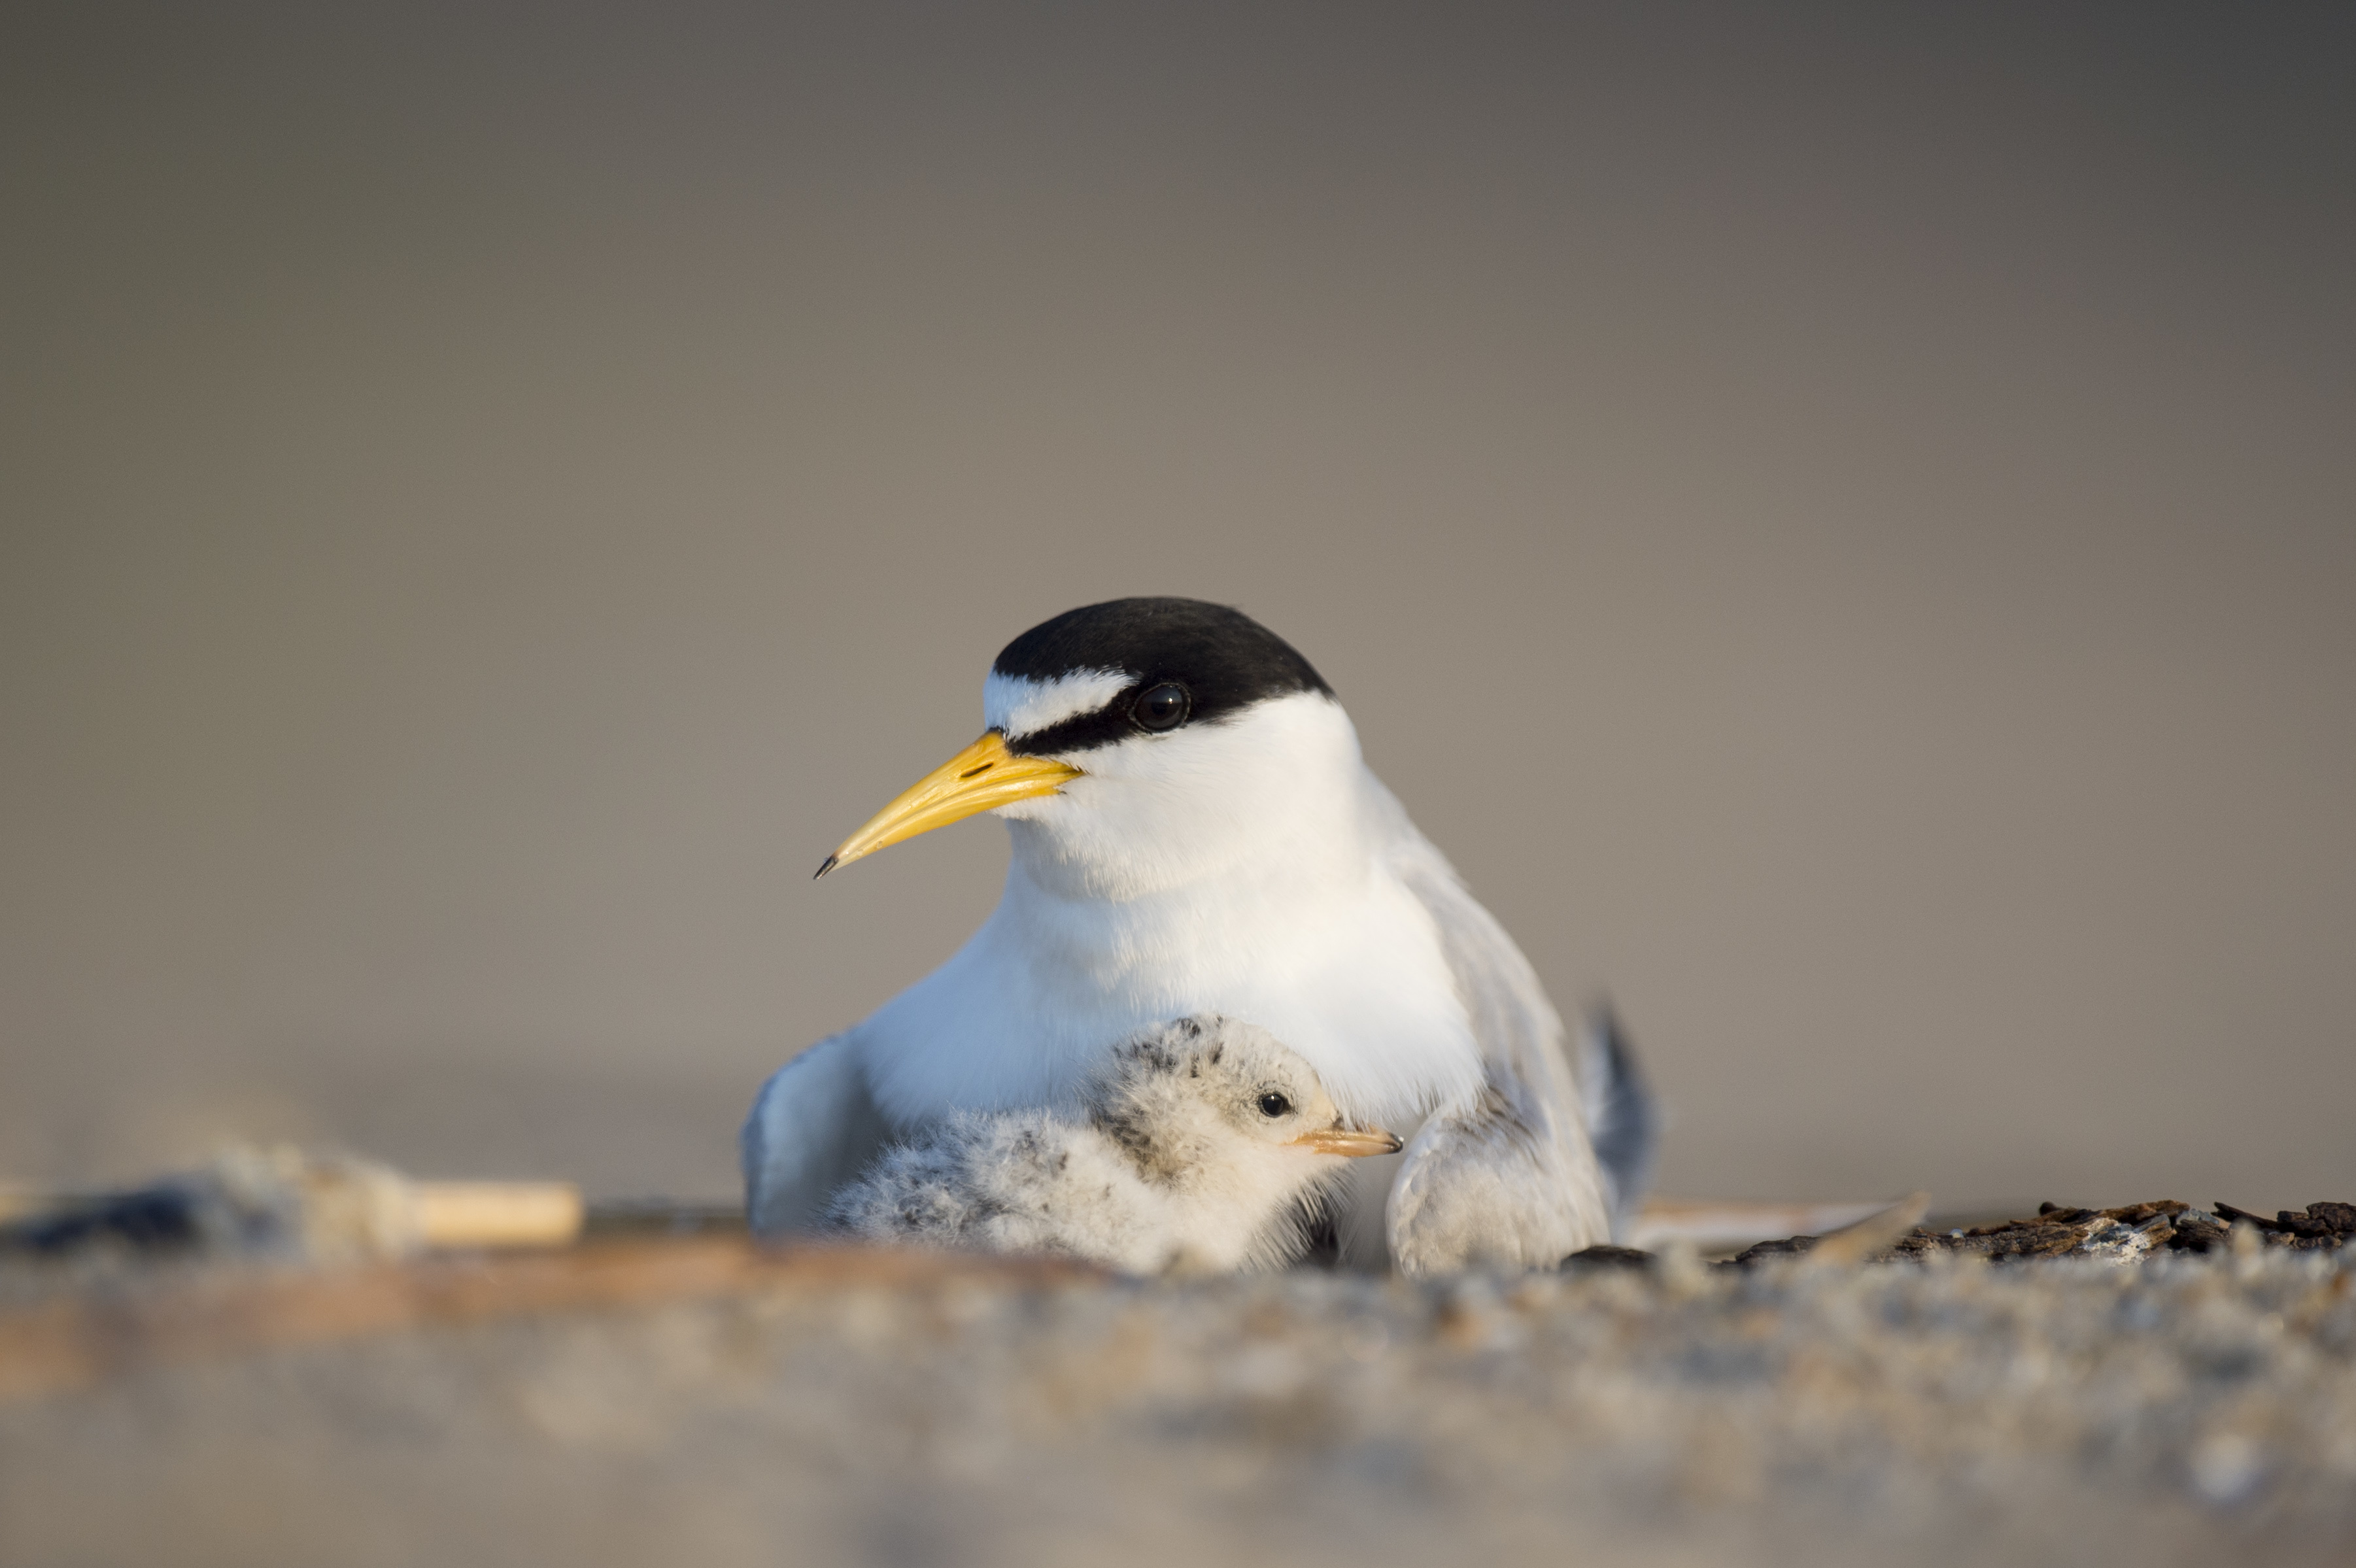 Least terns nesting on a beach